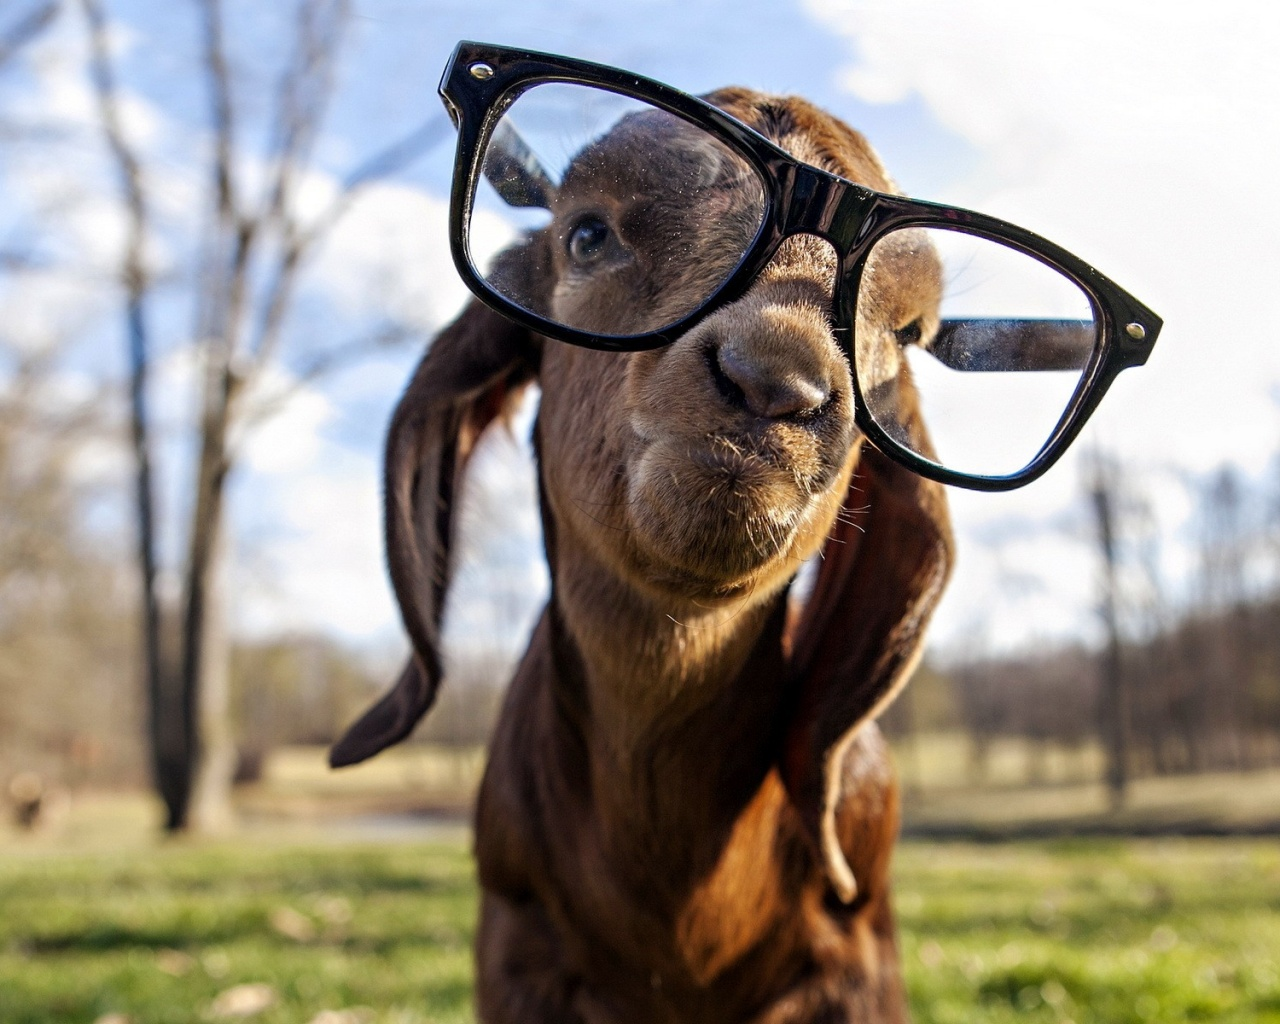 Goat with glasses